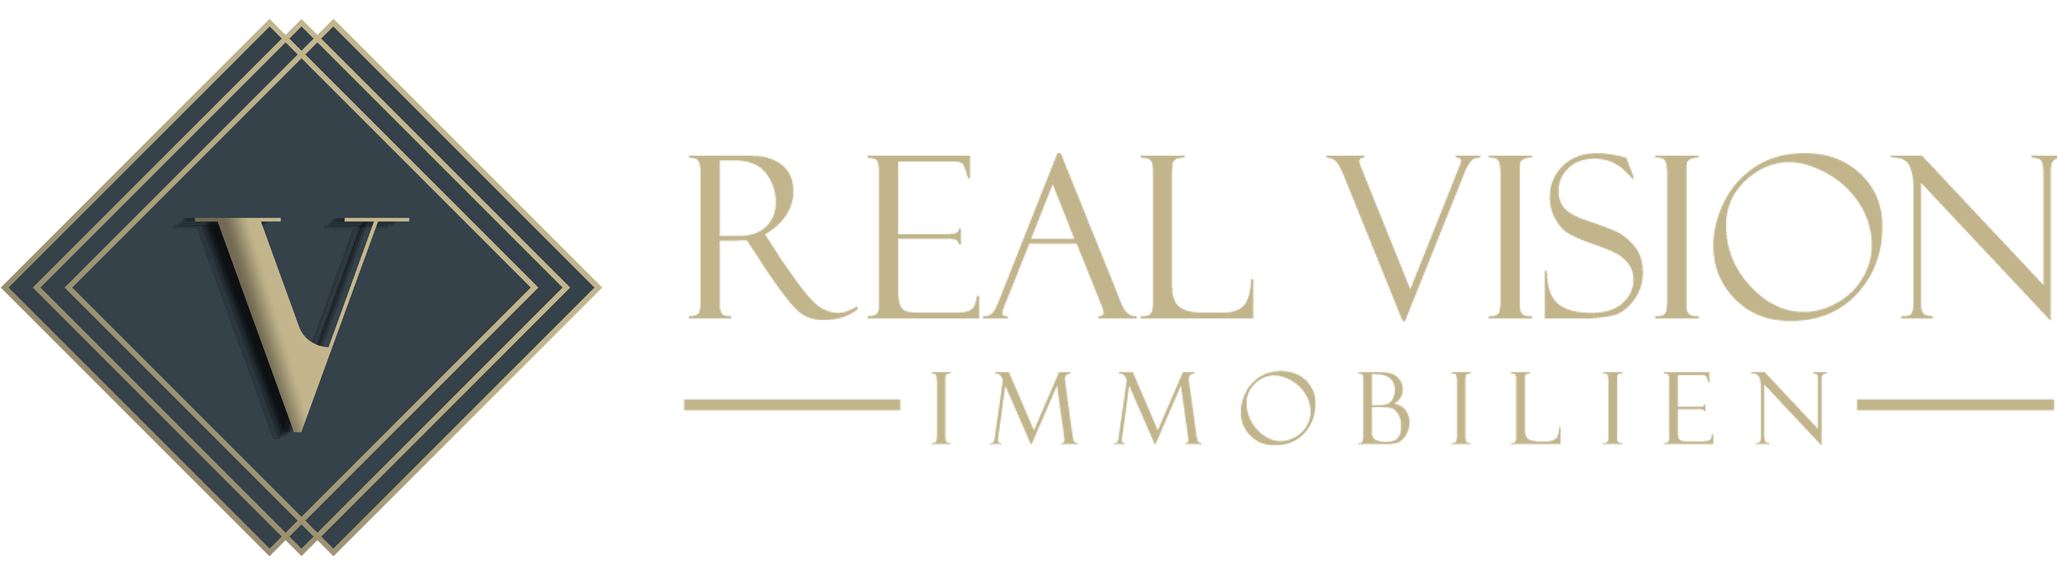 REAL VISION Immobilien